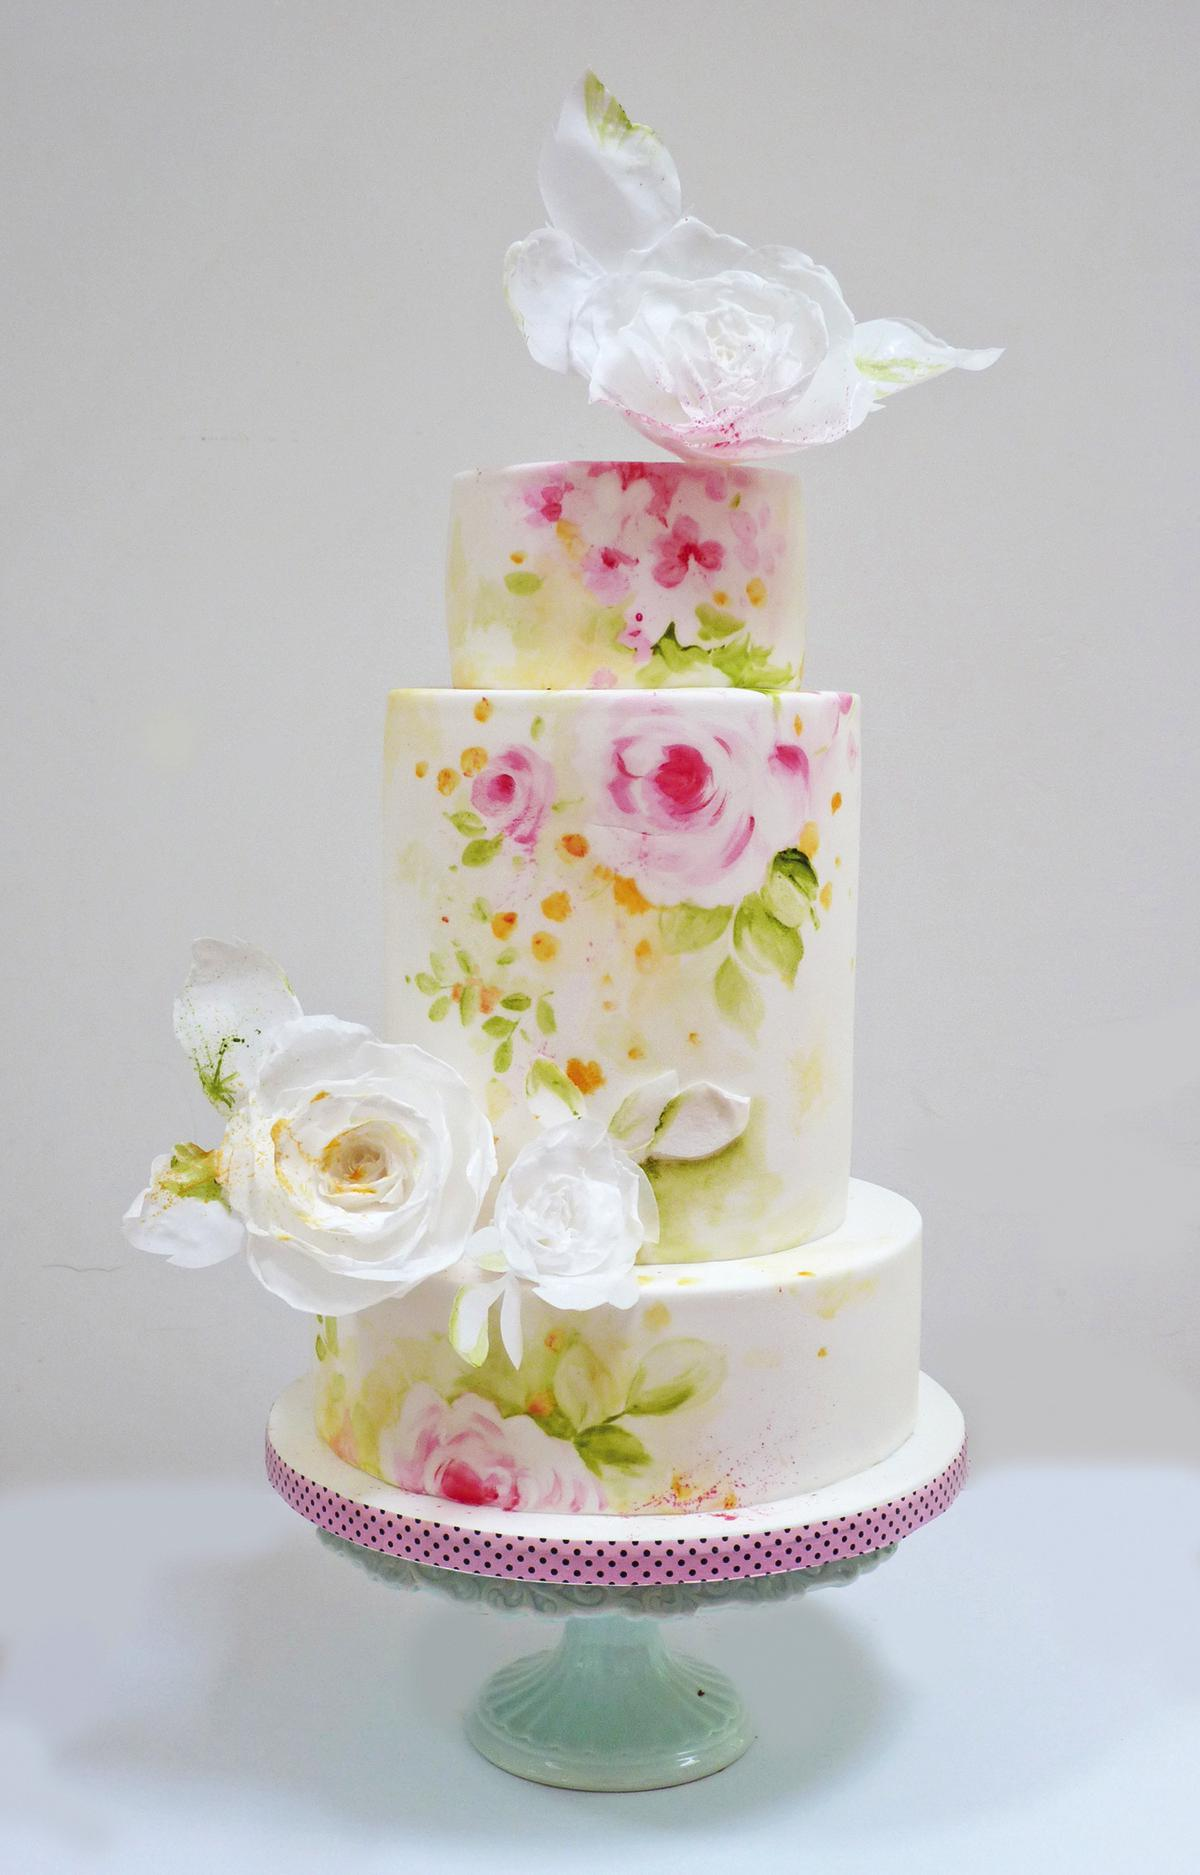 Floral wedding cakes - Nevie pie cakes